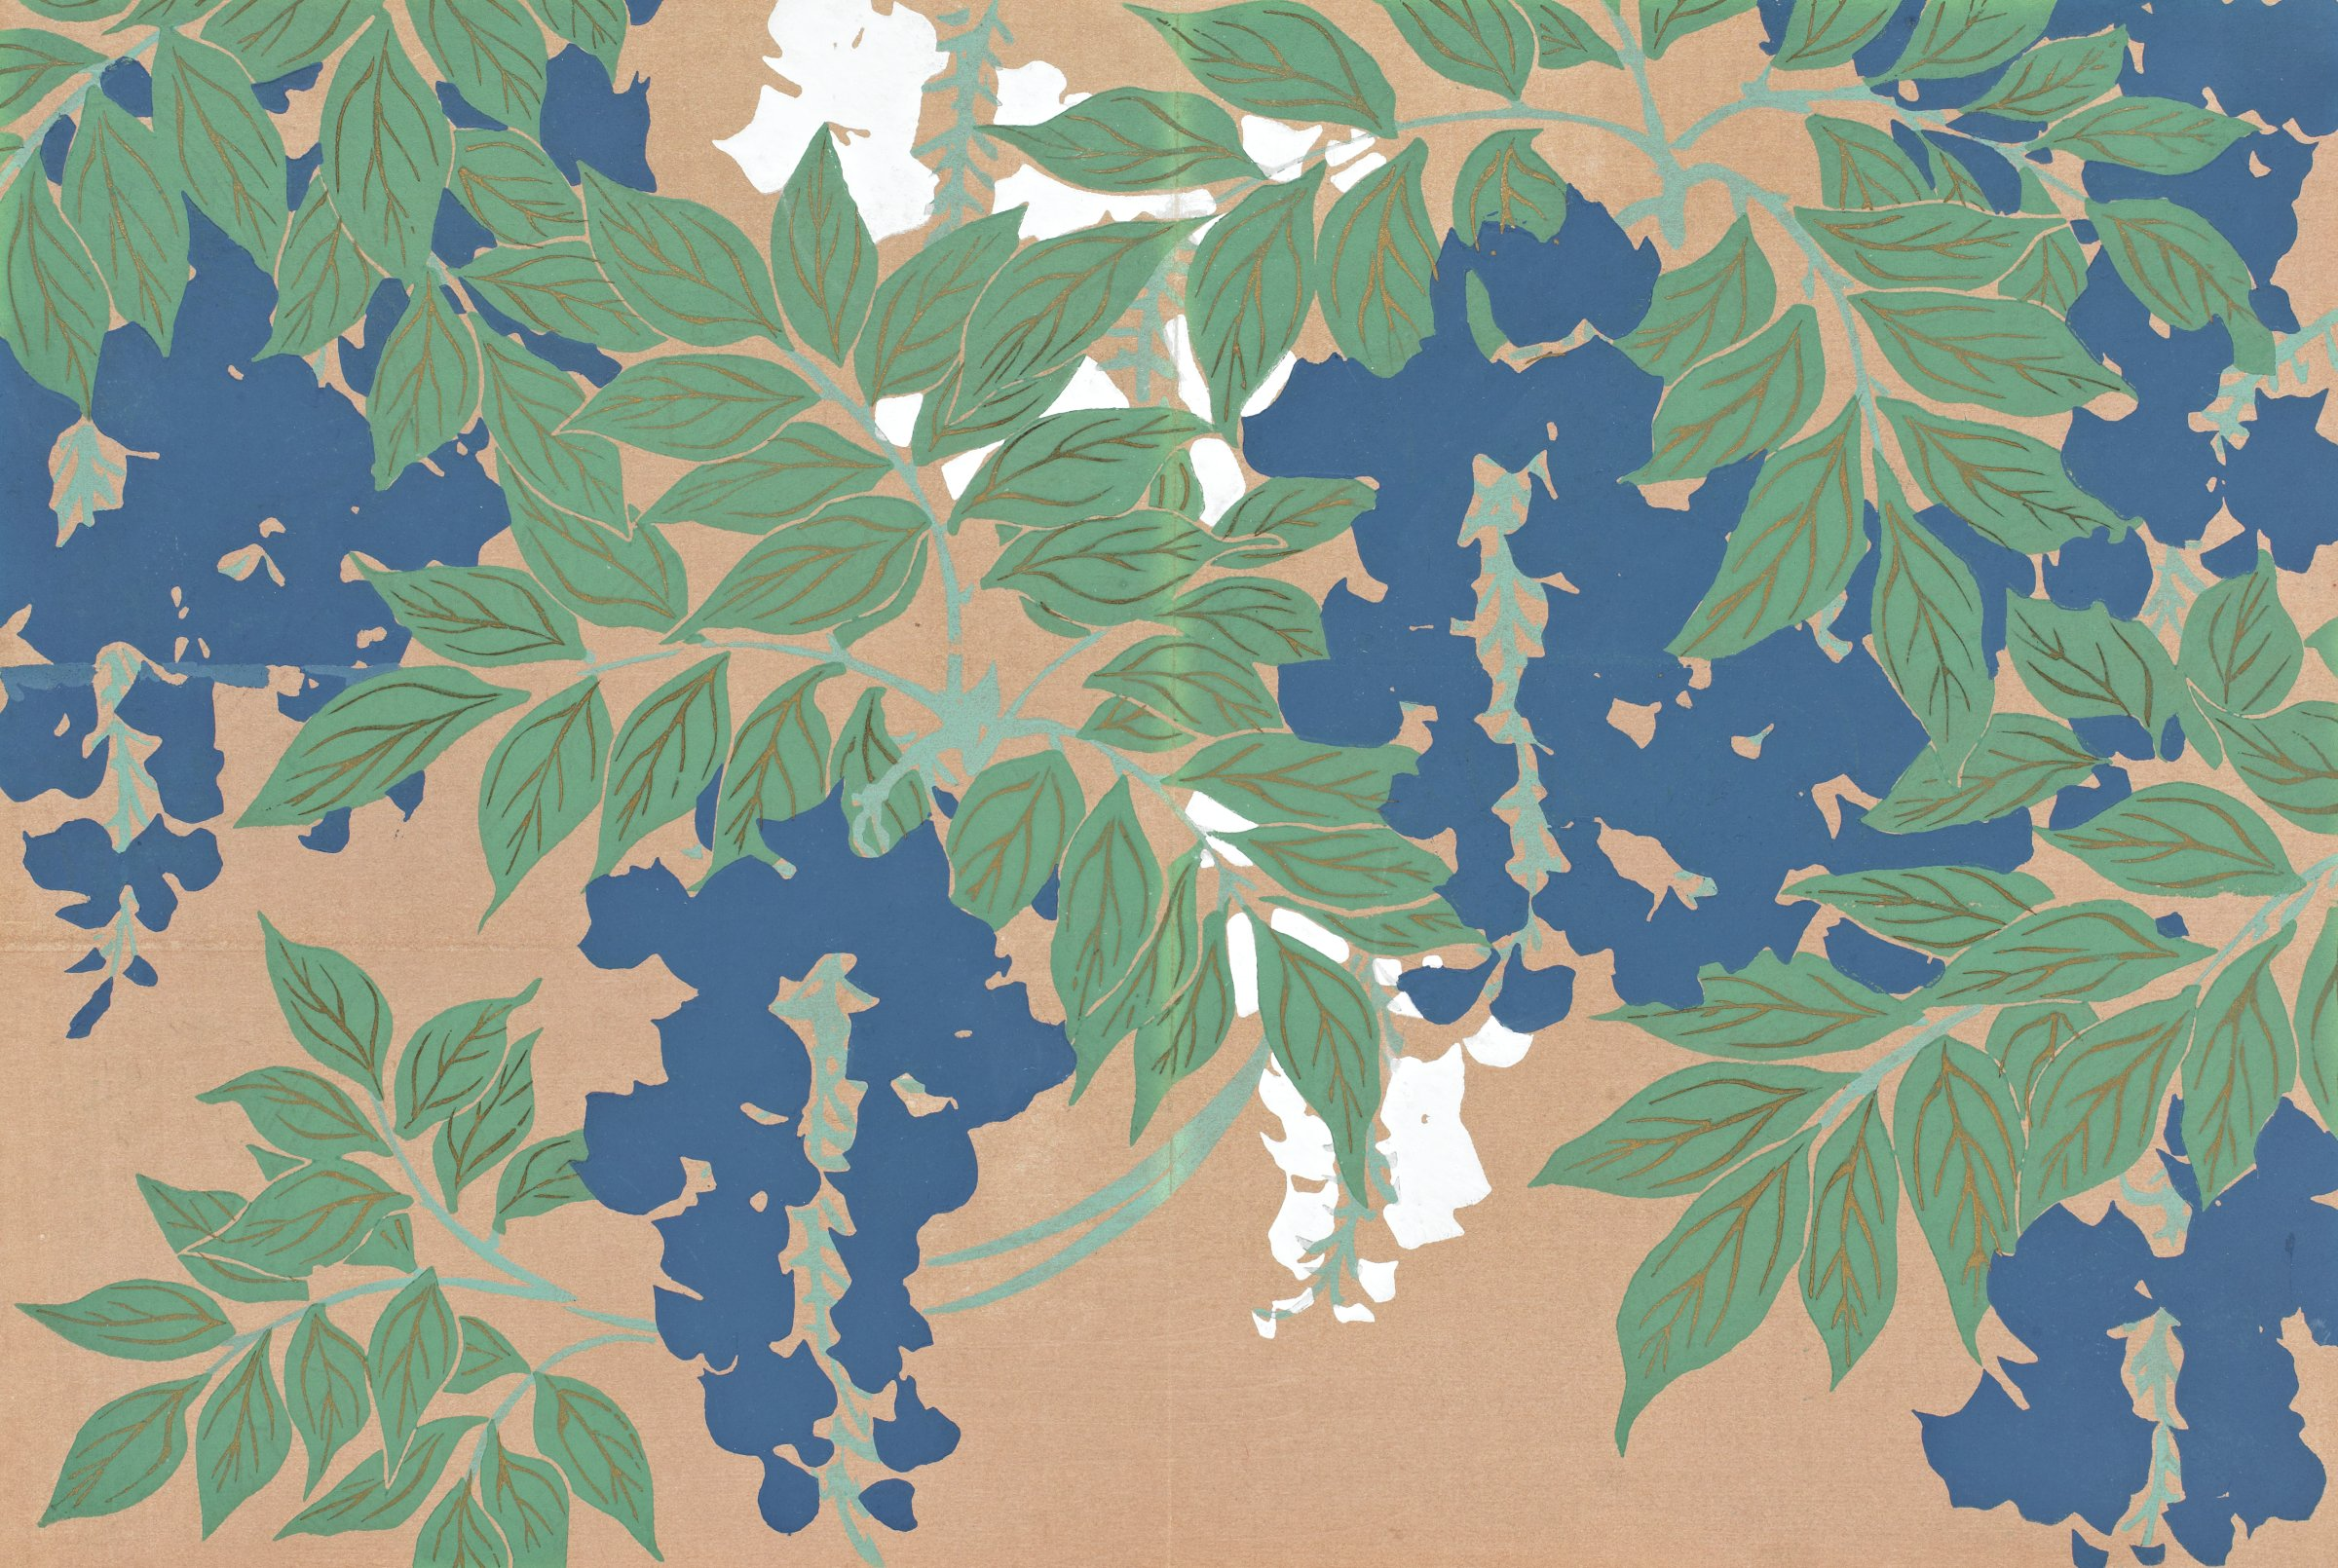 Fuji (Wisteria), from Momoyogusa (A World of Things), Volume 2, Kamisaka Sekka, ink and color on paper